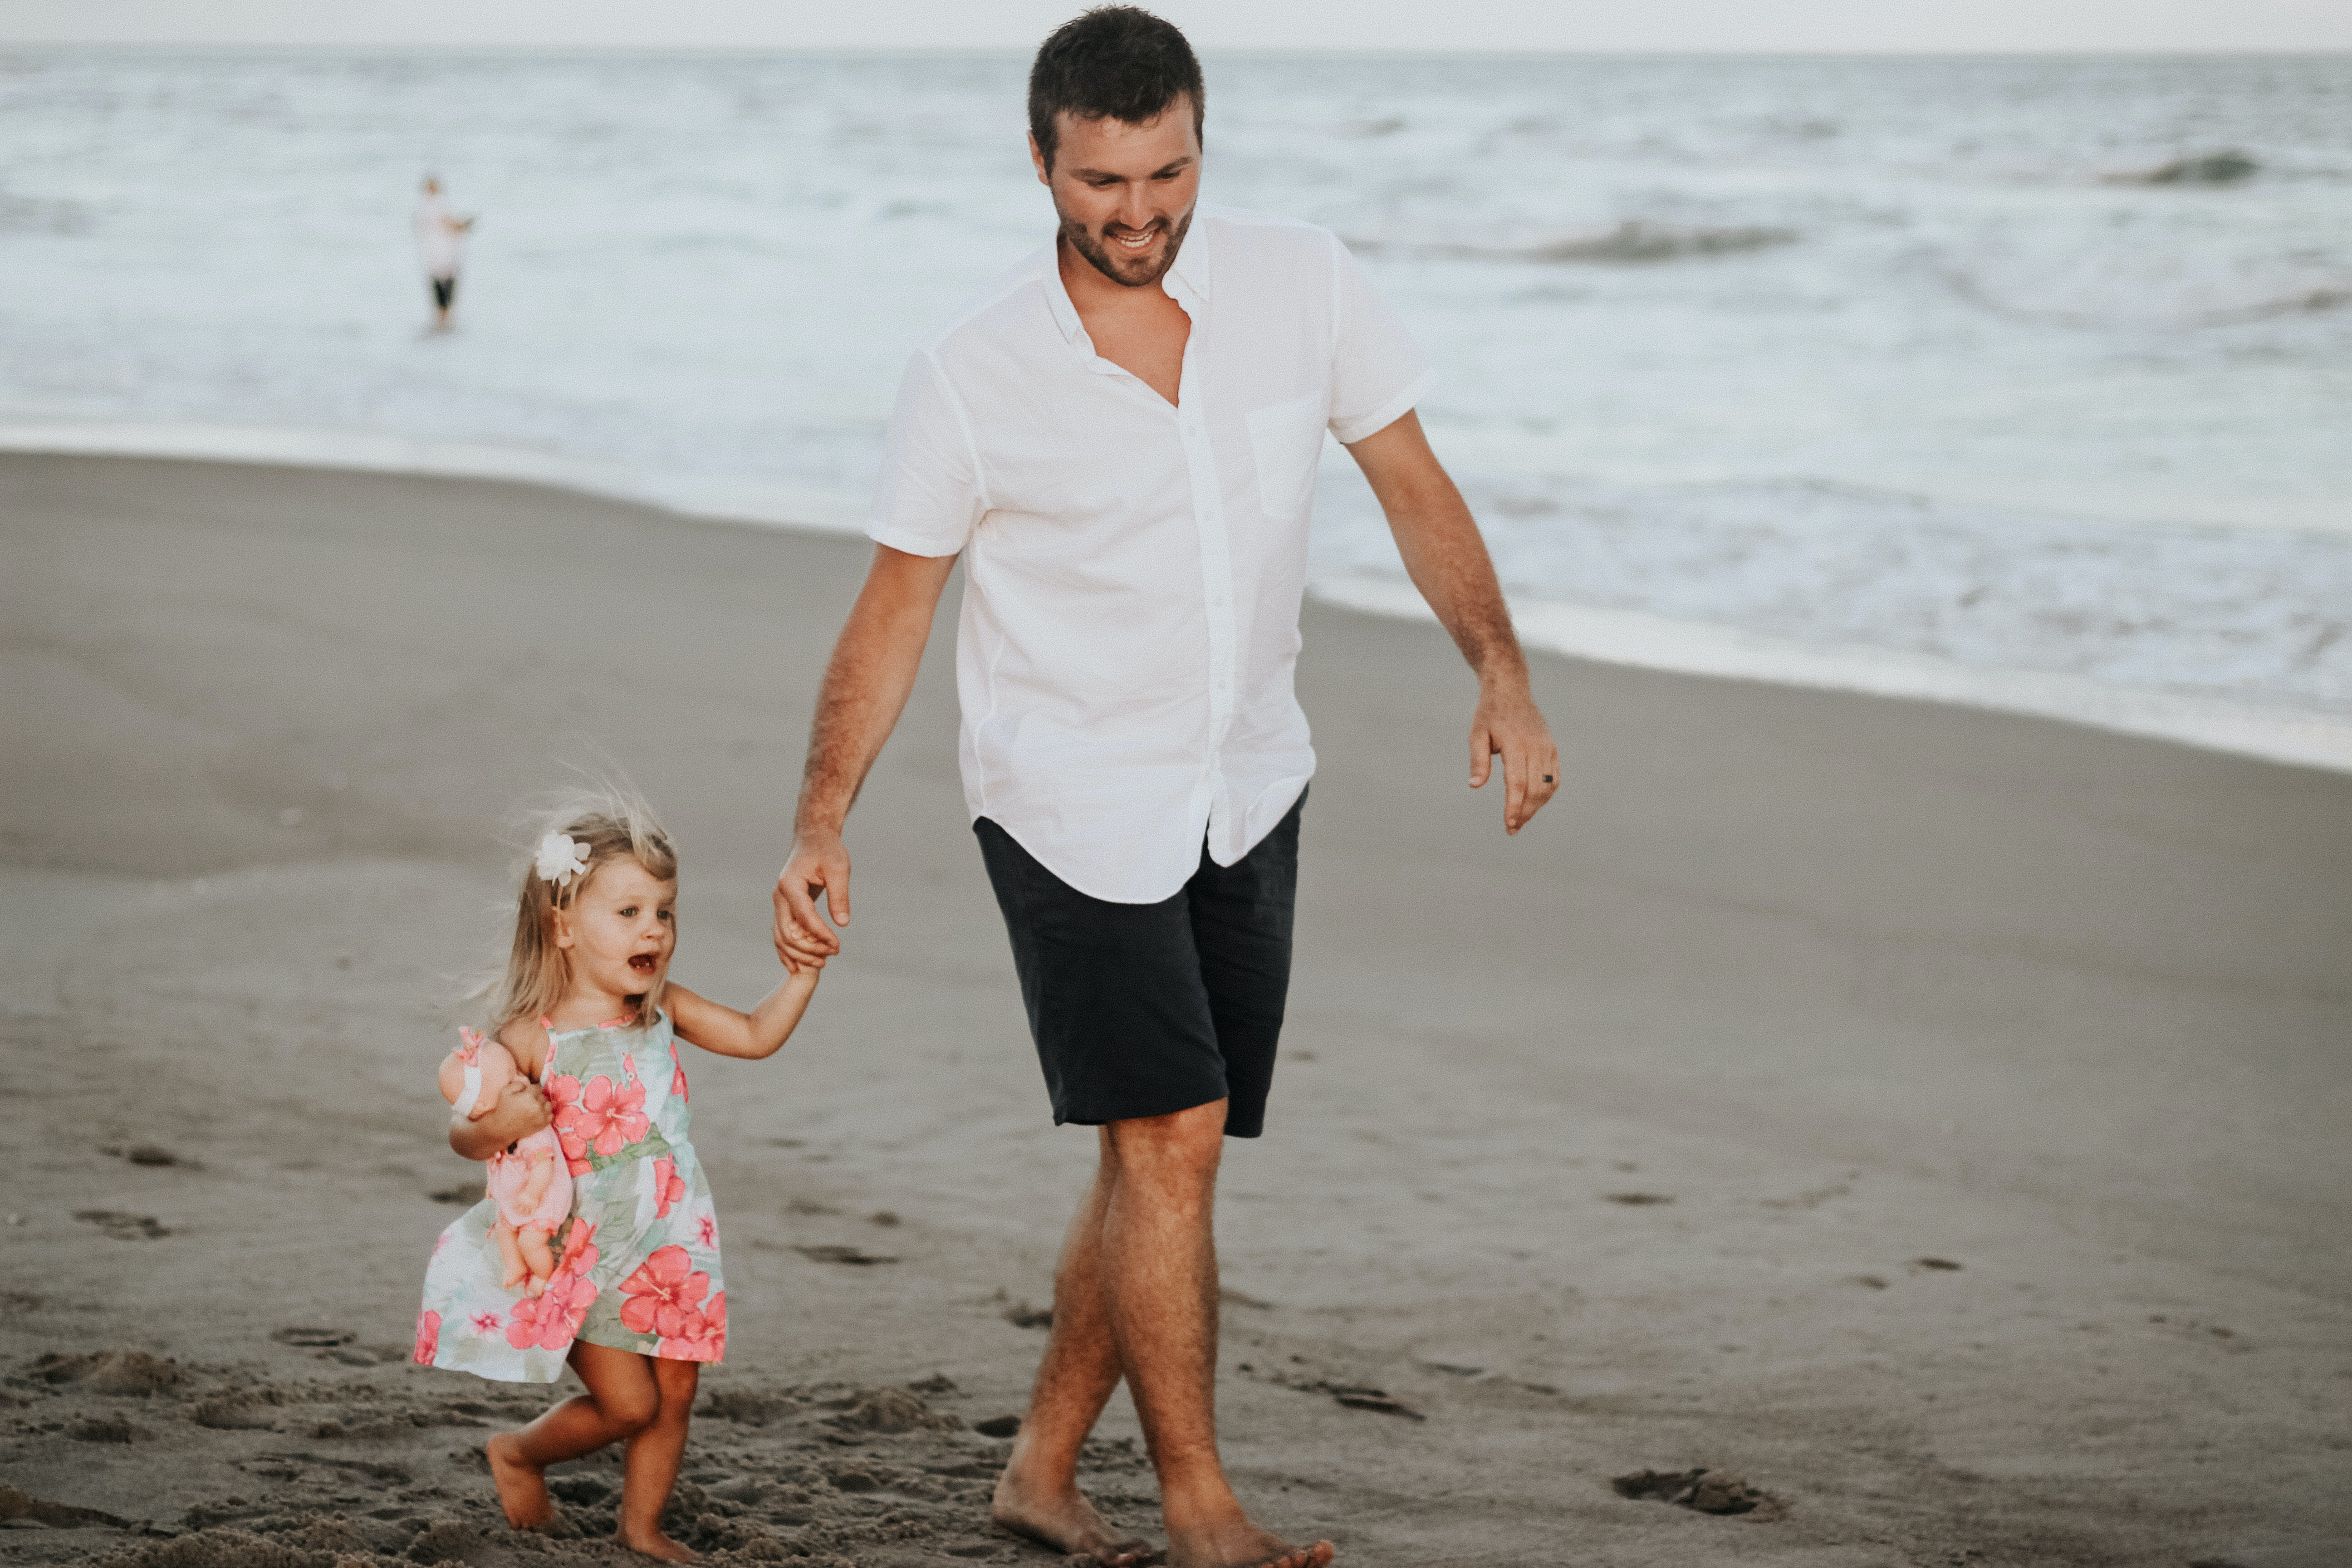 man holding her daughter while walking at the coastline